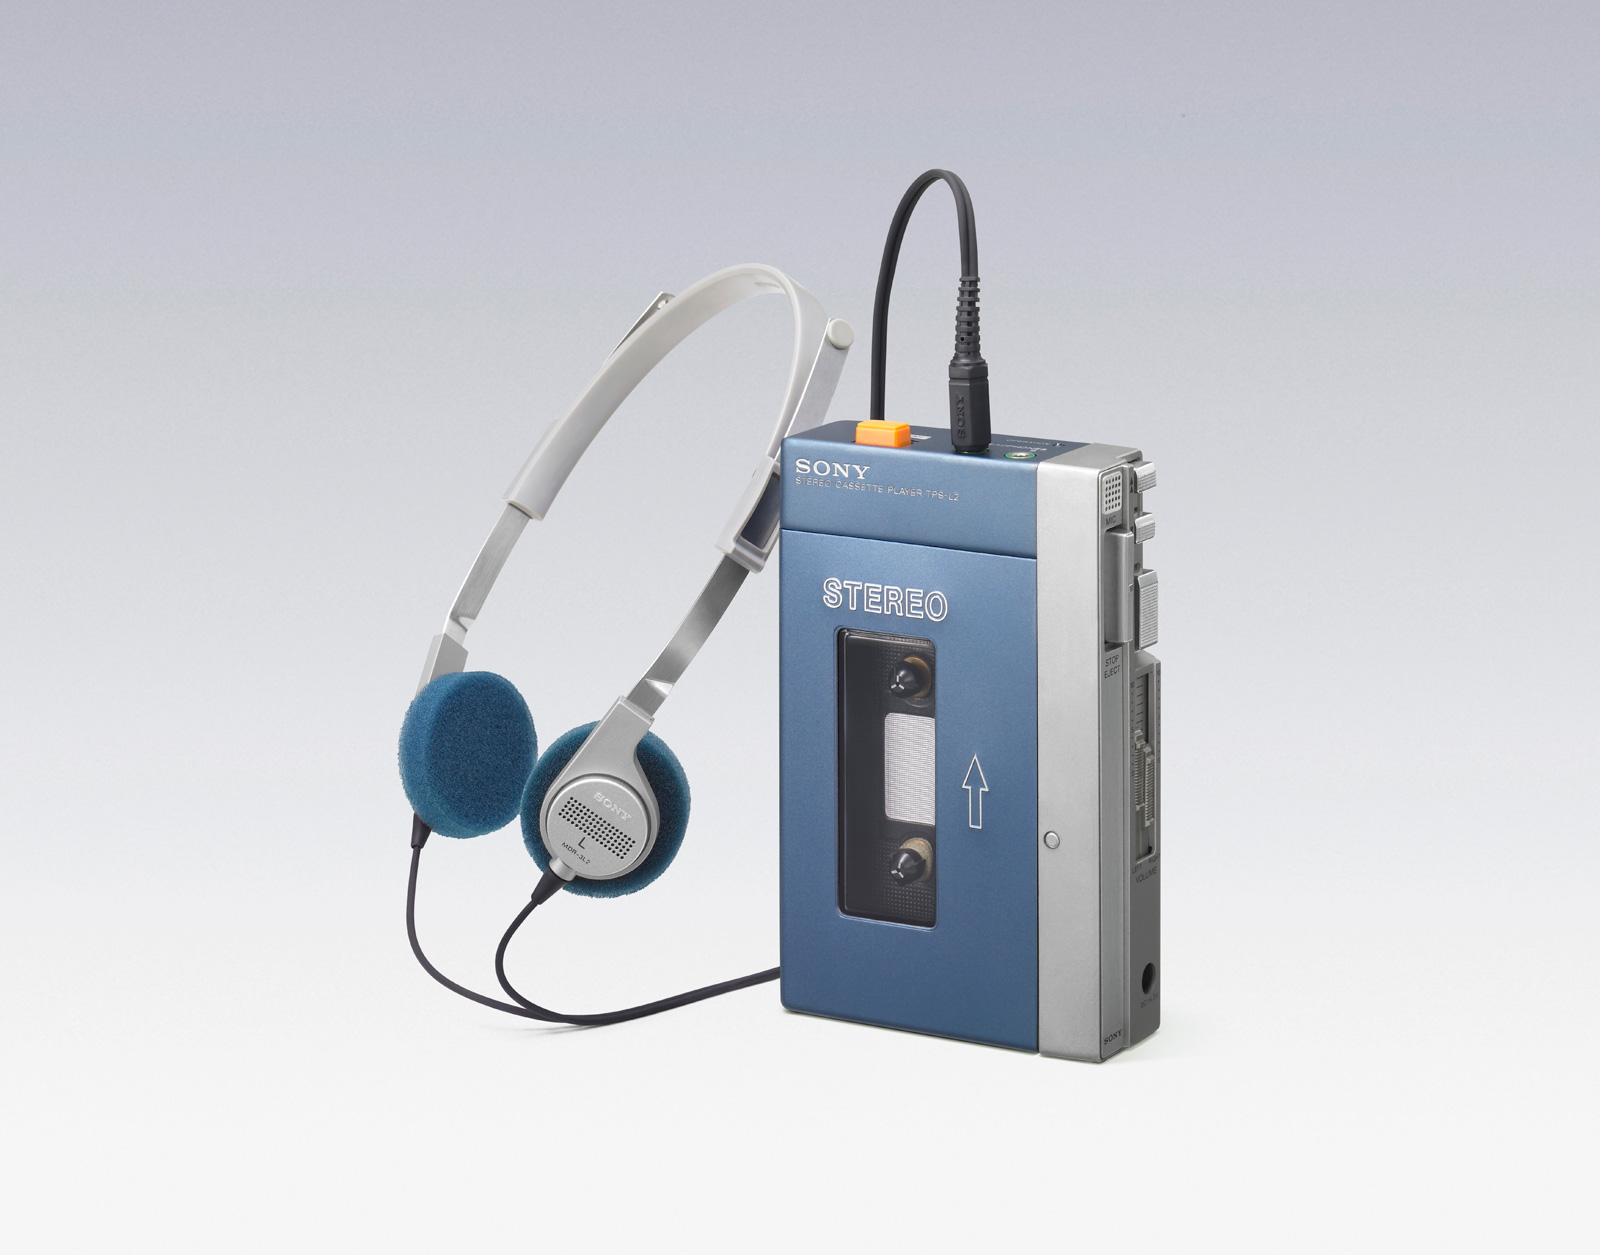 The History Of Walkman 35 Years Iconic Music Players Verge Wiring Diagram 1984 Onwards All Mini Series With Single Instrument Pack